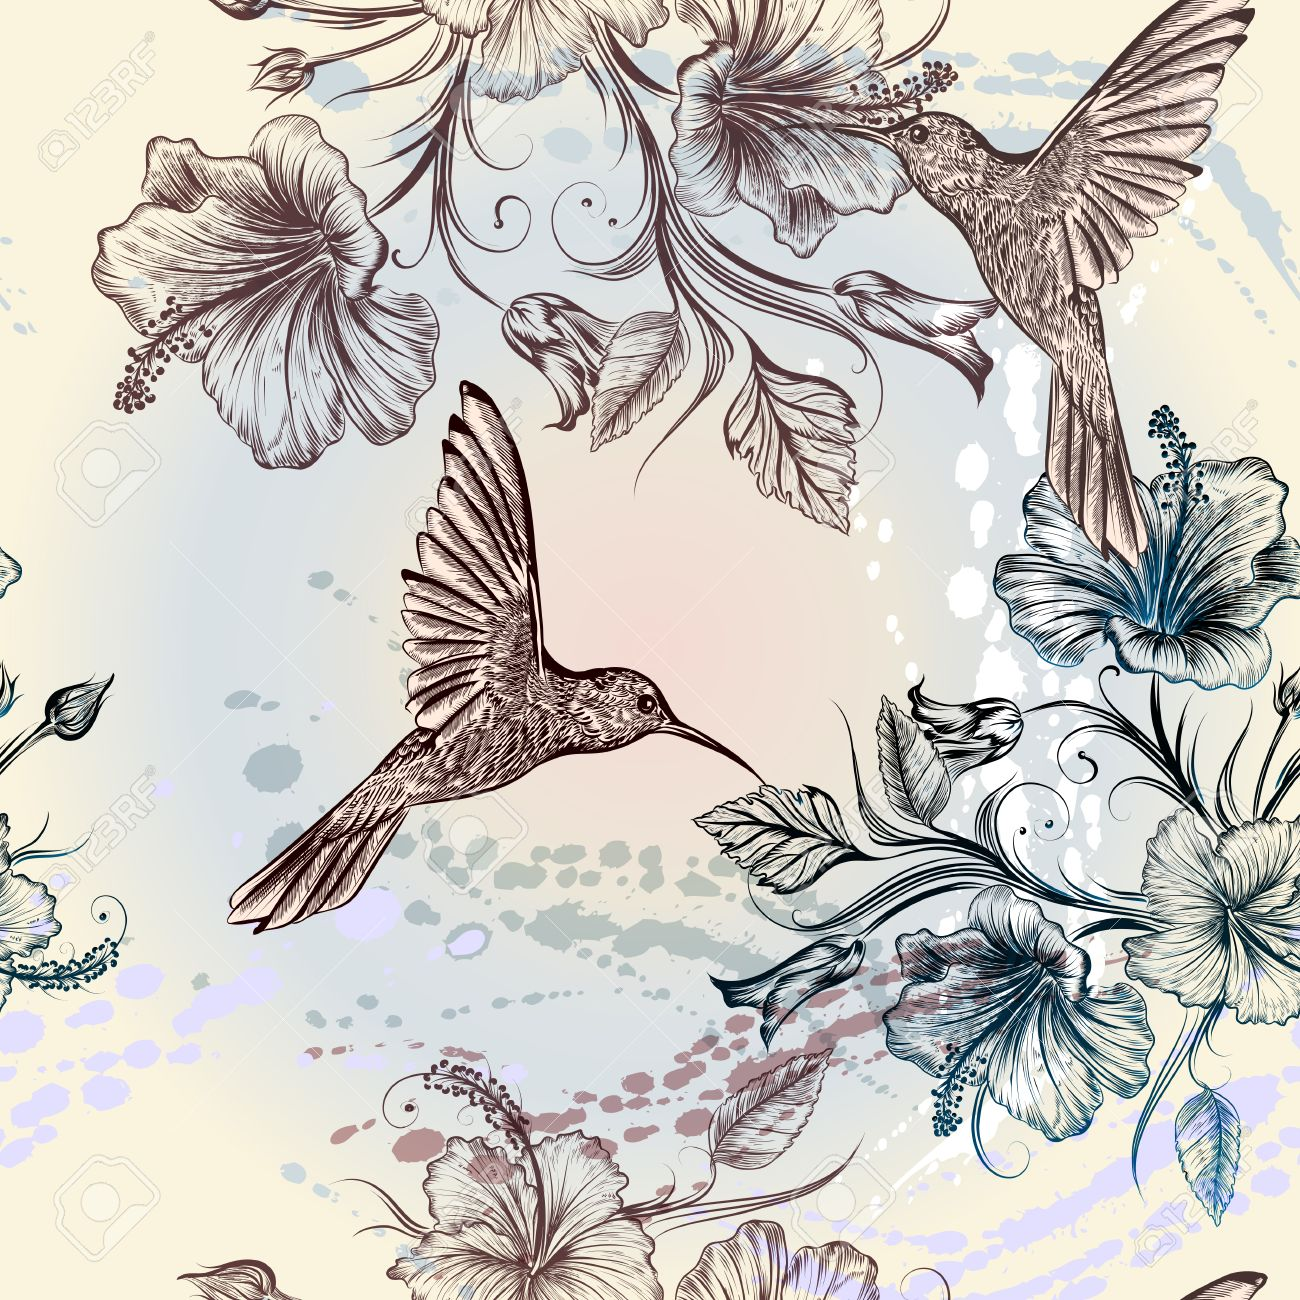 Seamless Wallpaper Pattern With Hummingbirds And Hibiscus Flowers Stock Vector